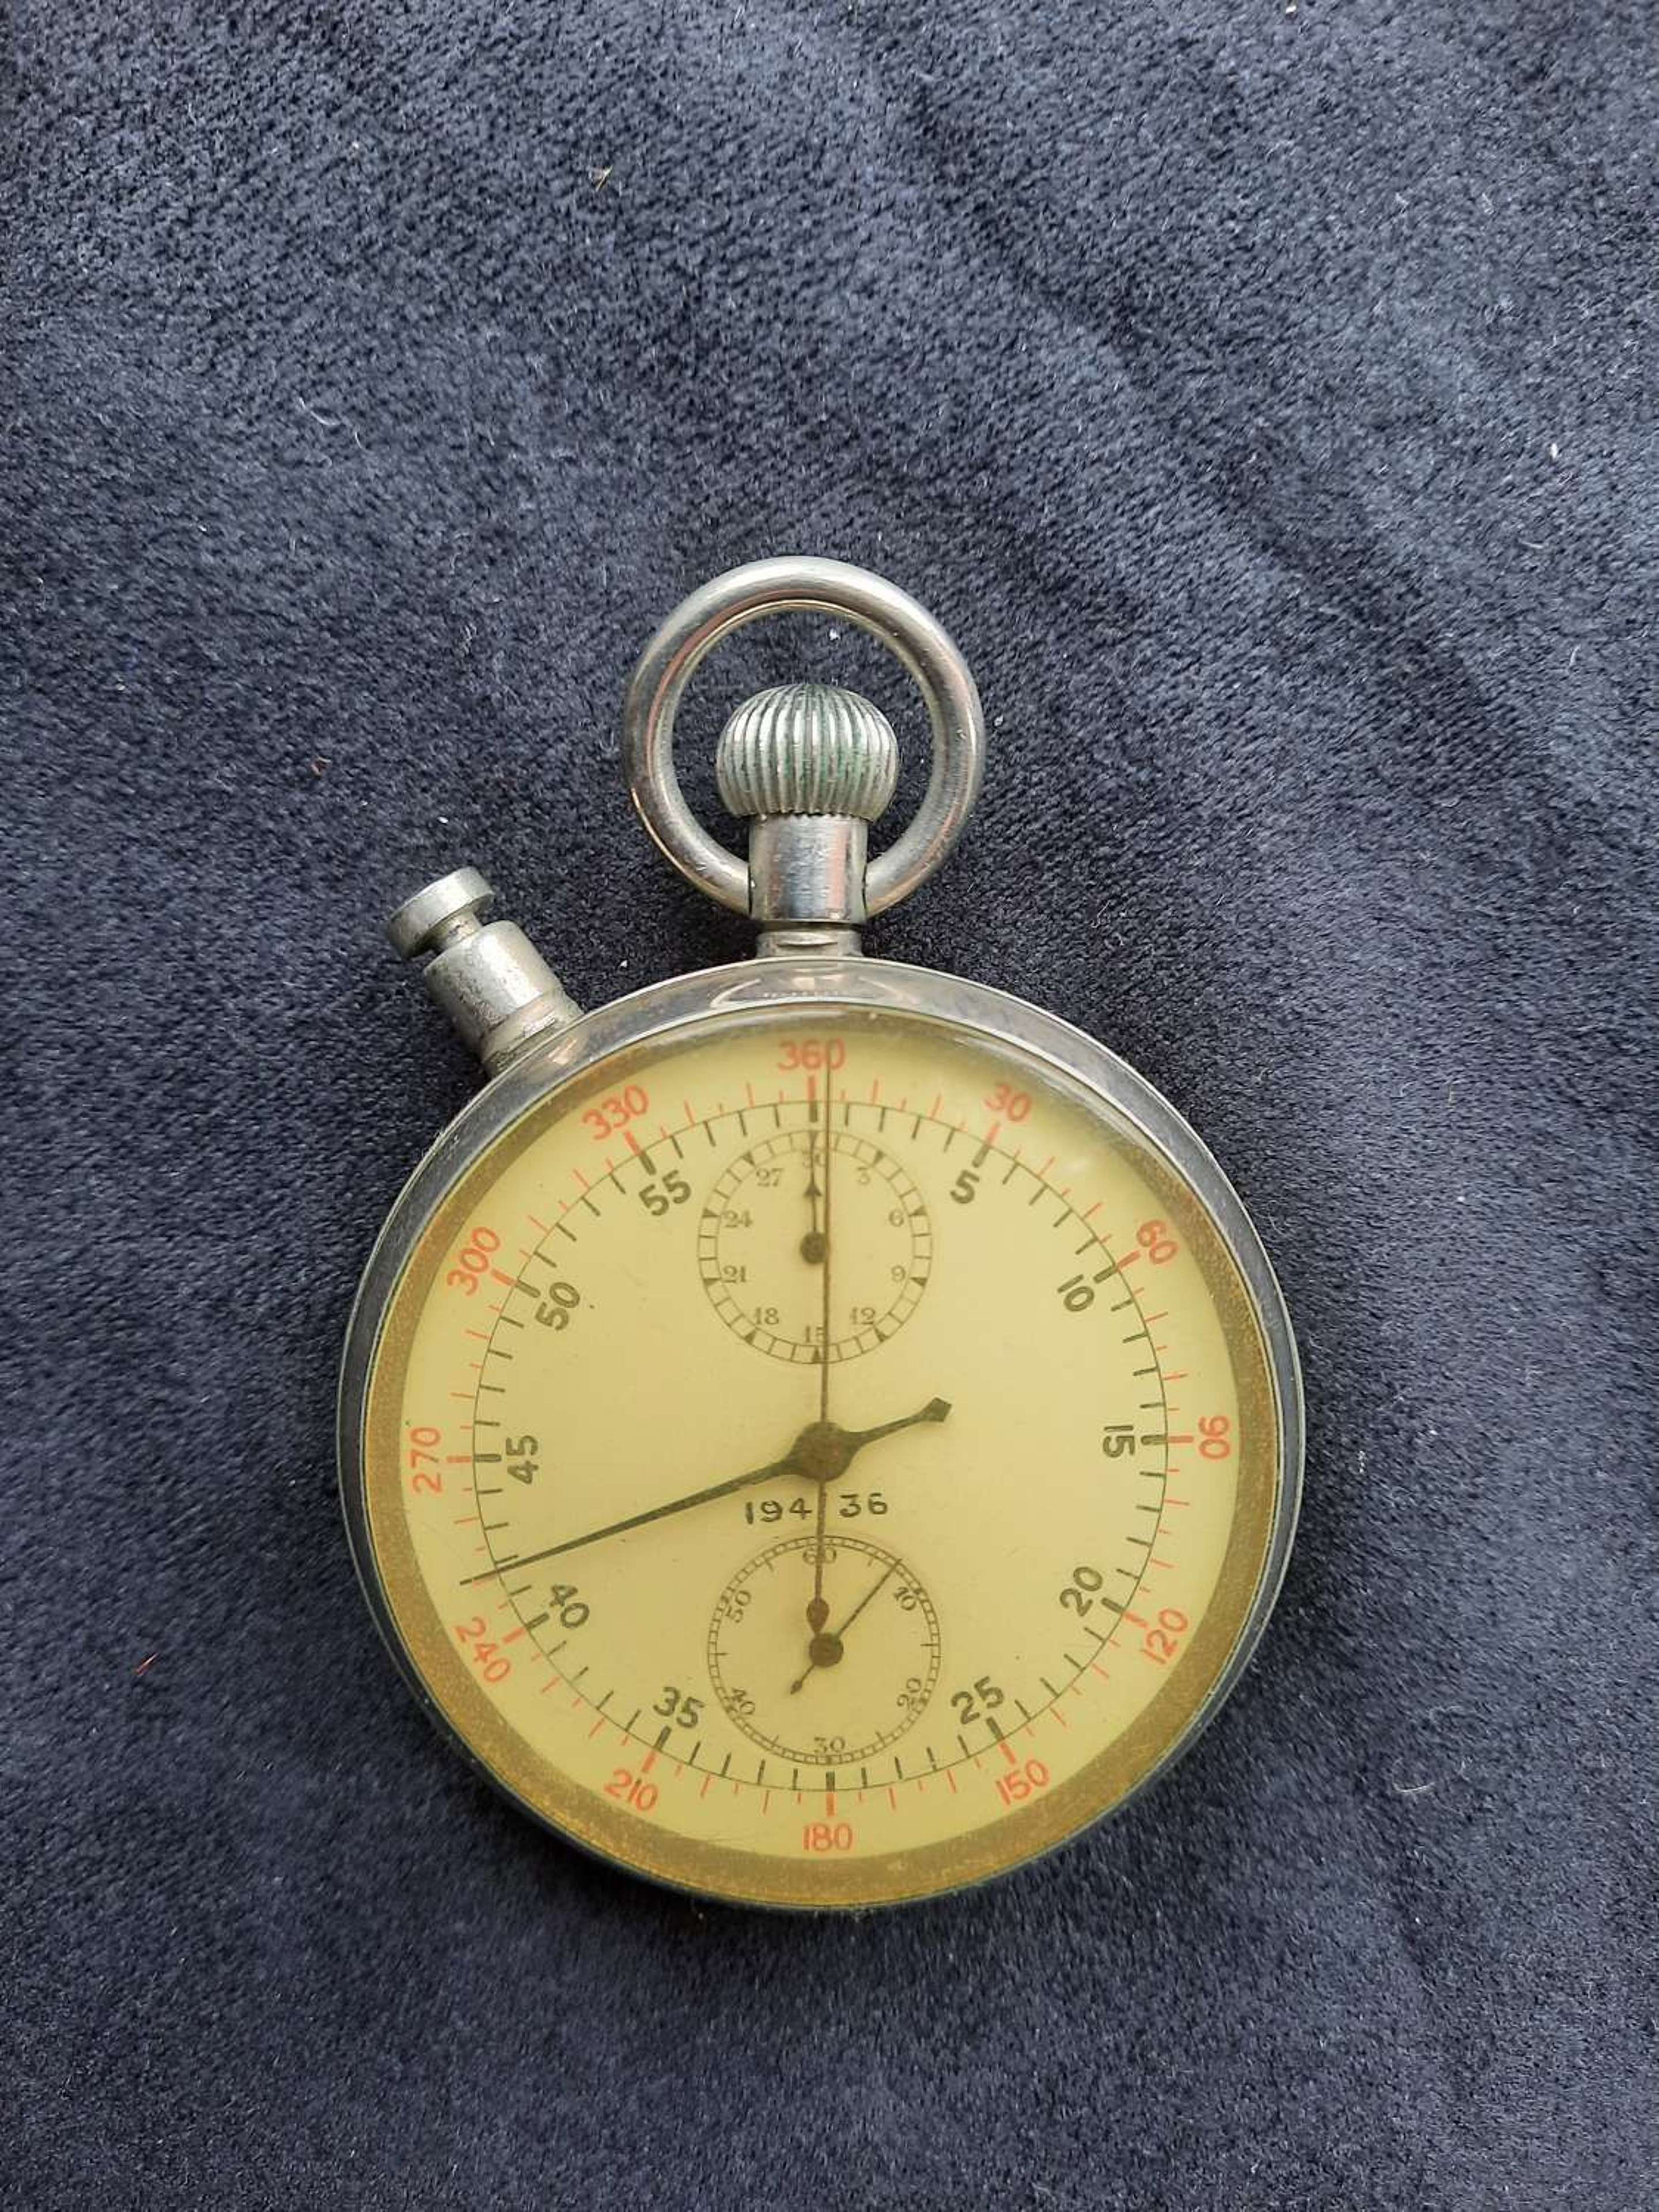 Air Ministry Stop Watch